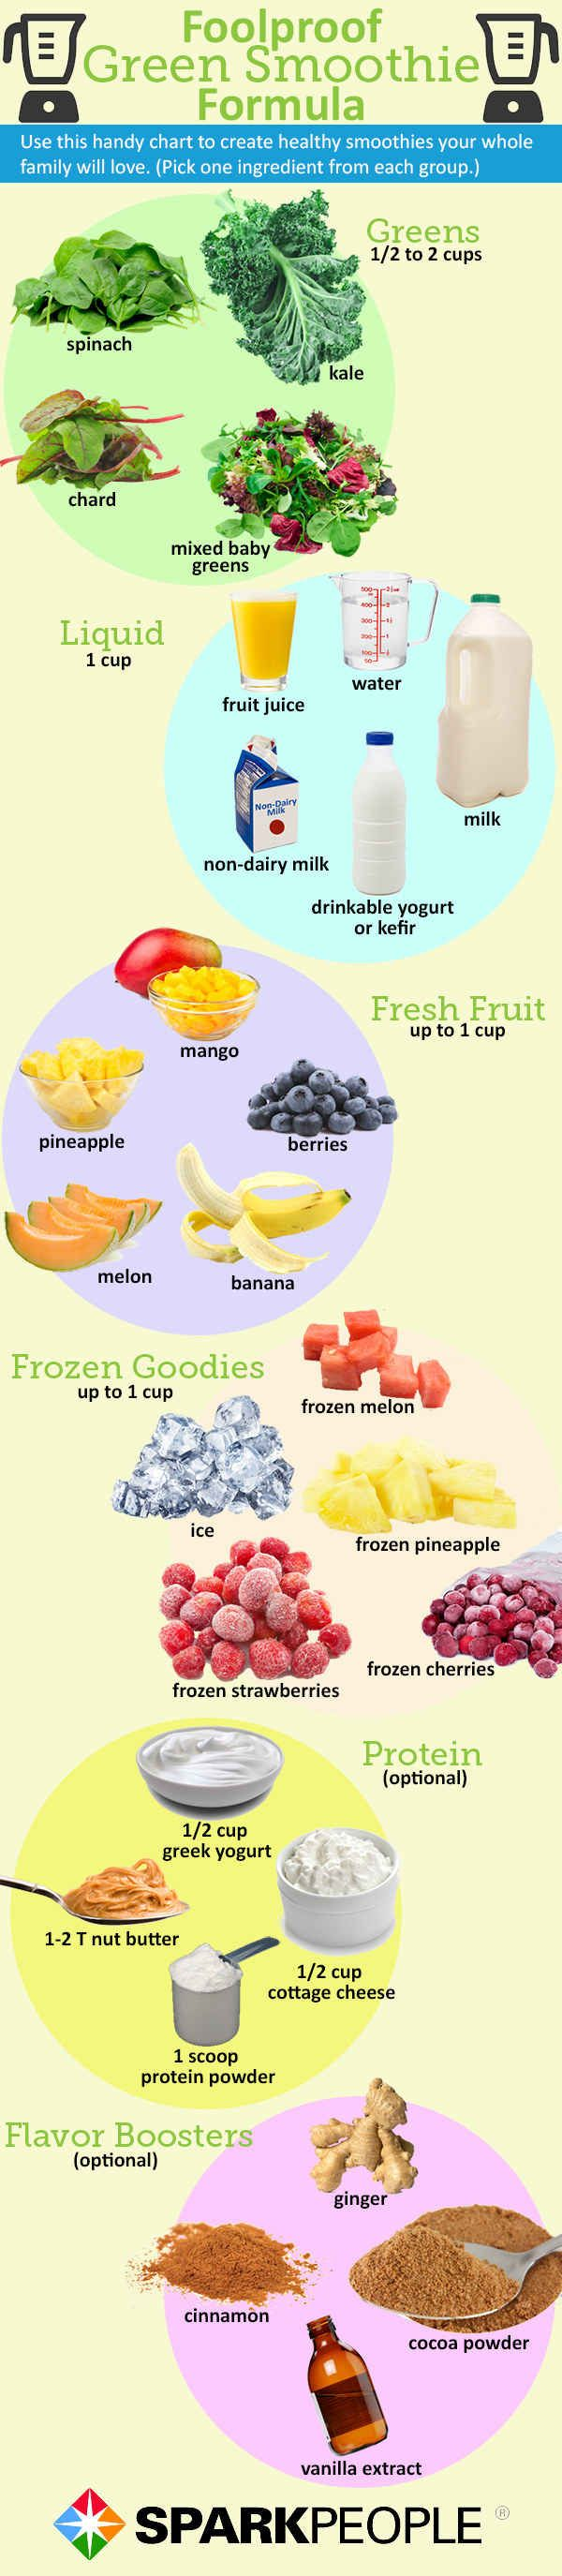 And for when you need a smoothie cheat sheet: